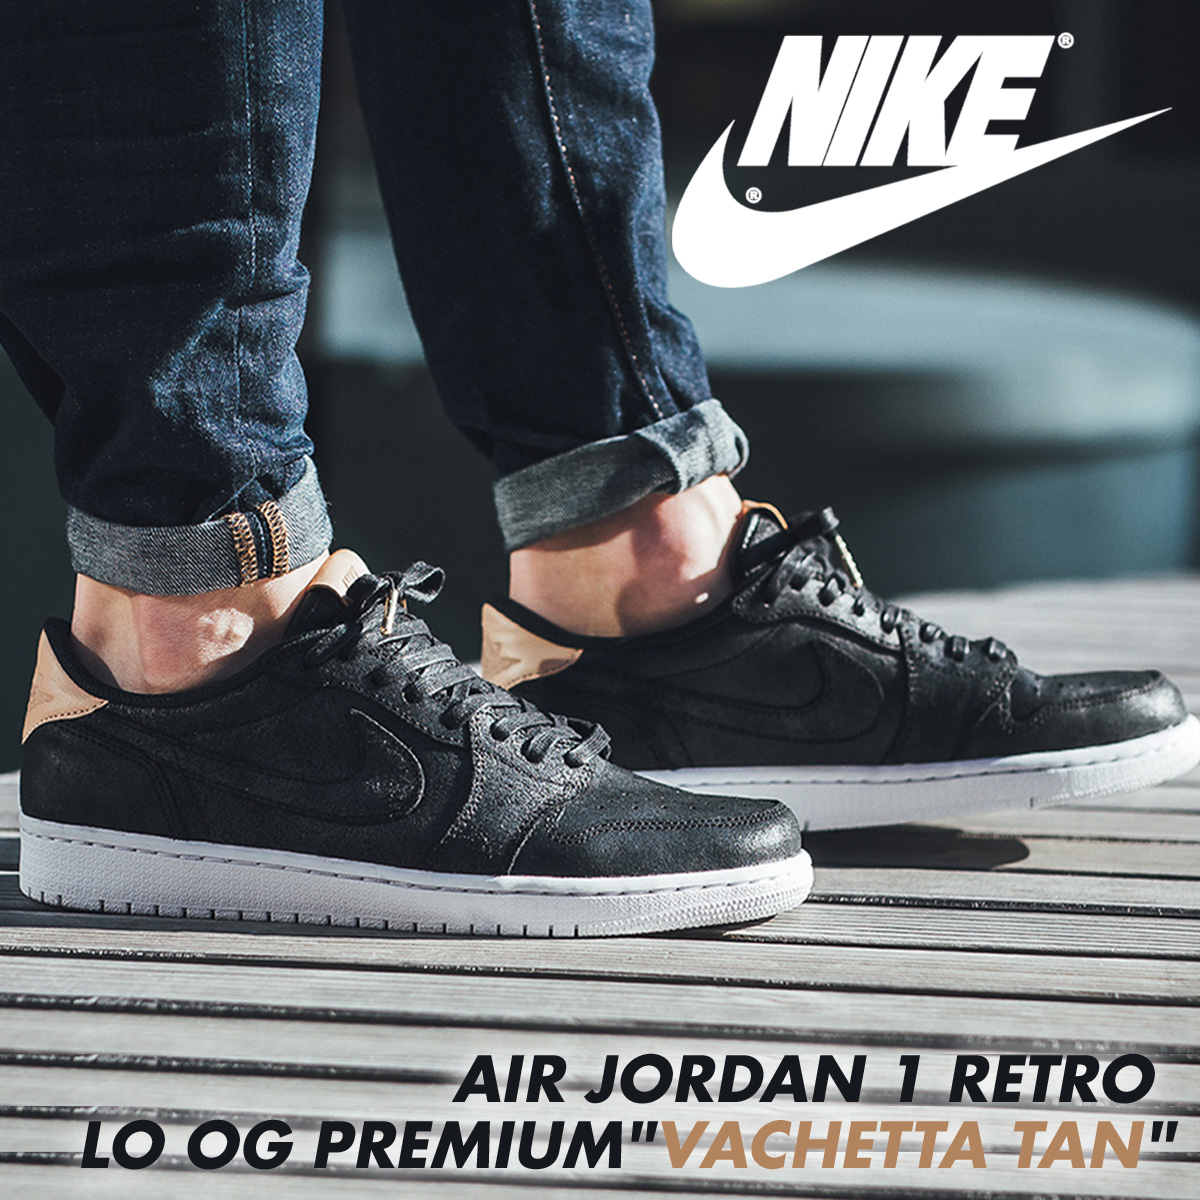 Shoes Load 010 Jordan 905 Og Retro Nike Black725 Low Reentry Air Men's 136 Sneakers 1 Nostalgic Premium GqpzVSUM